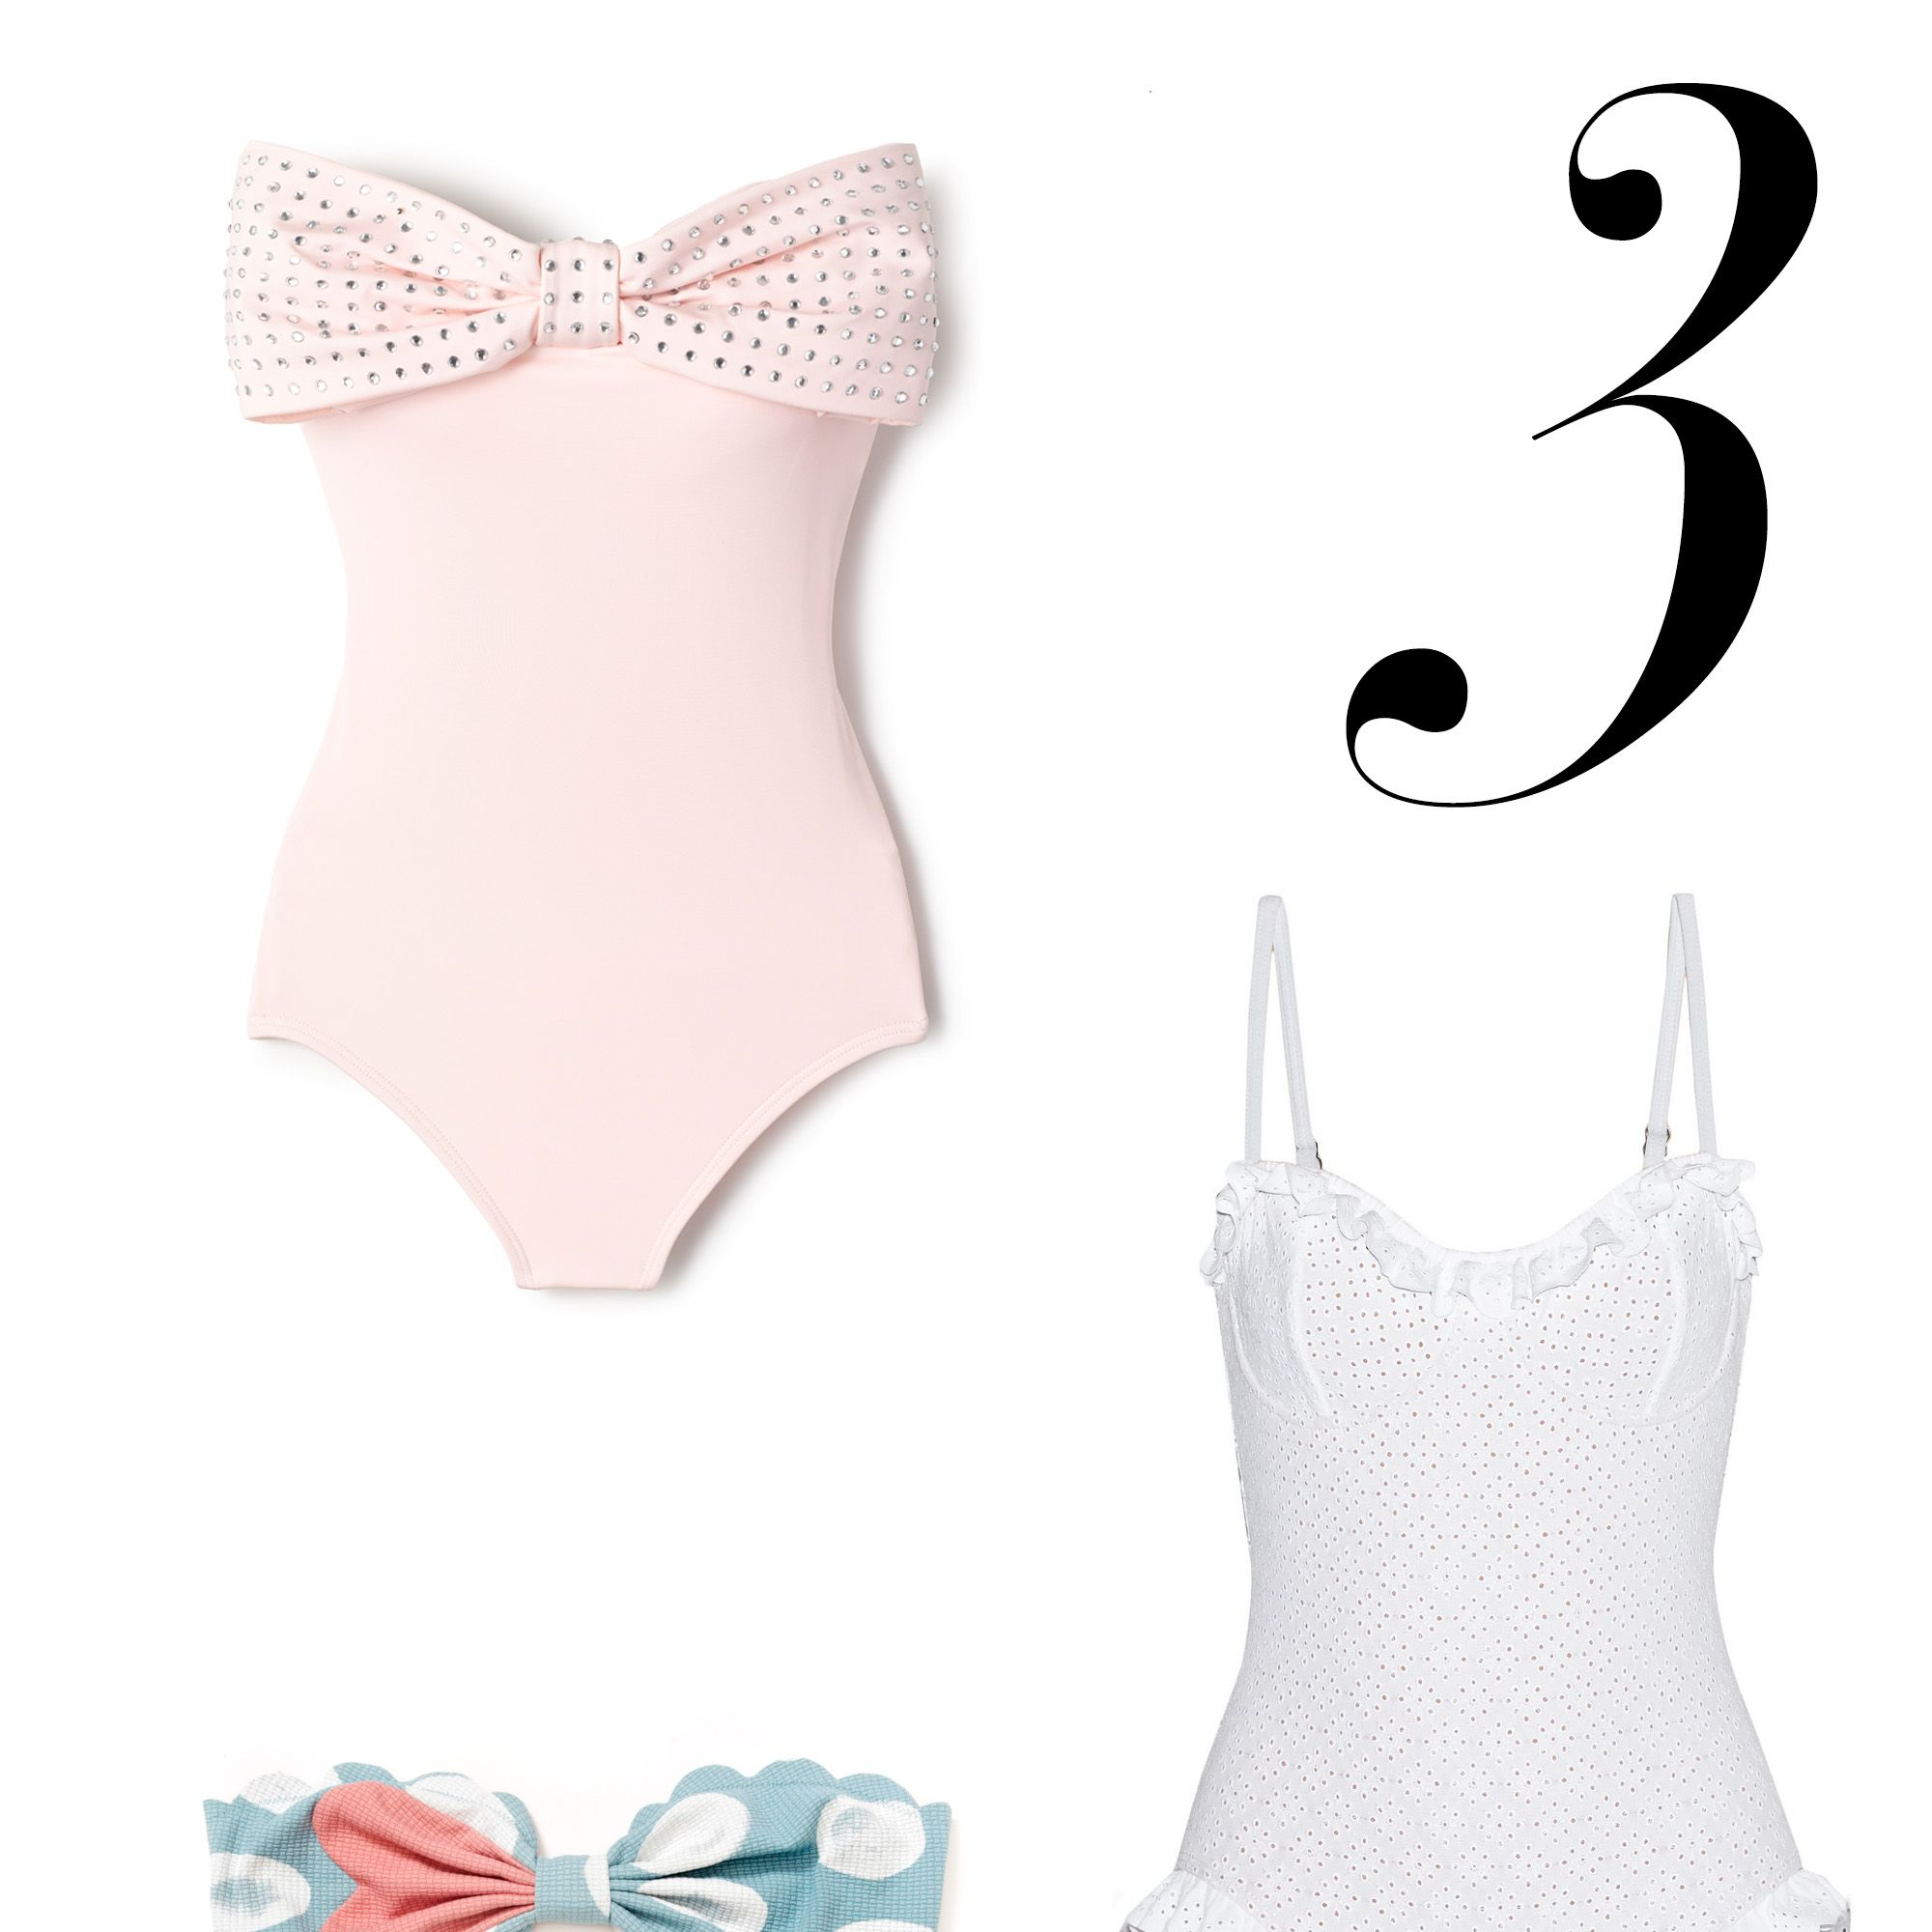 """For the girlish romantic, these suits are pretty in pink or white lace for a welcome feminine wink.<em>Kate Spade suit, $173, </em><a target=""""_blank"""" href=""""http://www.everythingbutwater.com/swimwear/browse/category/one-piece.html?page=1&amp&#x3B;filters=5771&#x3B;&amp&#x3B;sizes=&amp&#x3B;colors=&amp&#x3B;prices=0&#x3B;10000&amp&#x3B;limit=48&amp&#x3B;base=&#x3B;88&#x3B;2790""""><em>everythingbutwater.com</em></a><em>&#x3B; Marysia suit, $139, <a target=""""_blank"""" href=""""http://marysiaswim.com/product/i-heart-antibes/"""">marysiaswim.com</a>&#x3B; Michael Kors suit, $360, <a target=""""_blank"""" href=""""http://www.net-a-porter.com/us/en/product/534975"""">net-a-porter.com</a></em>"""